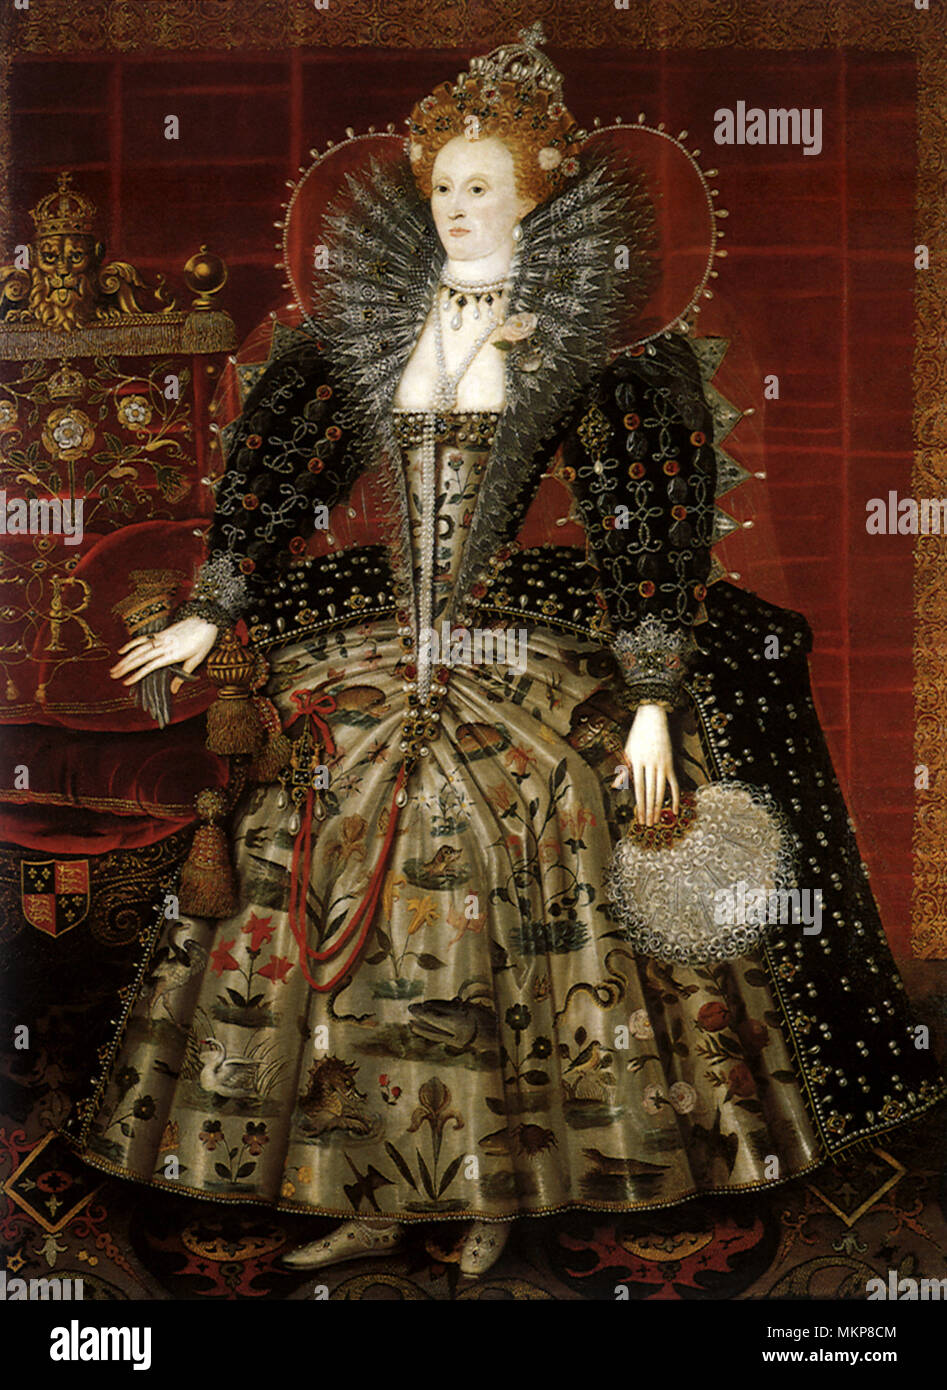 Queen Elizabeth I, the Hardwick Portrait 1599 - Stock Image